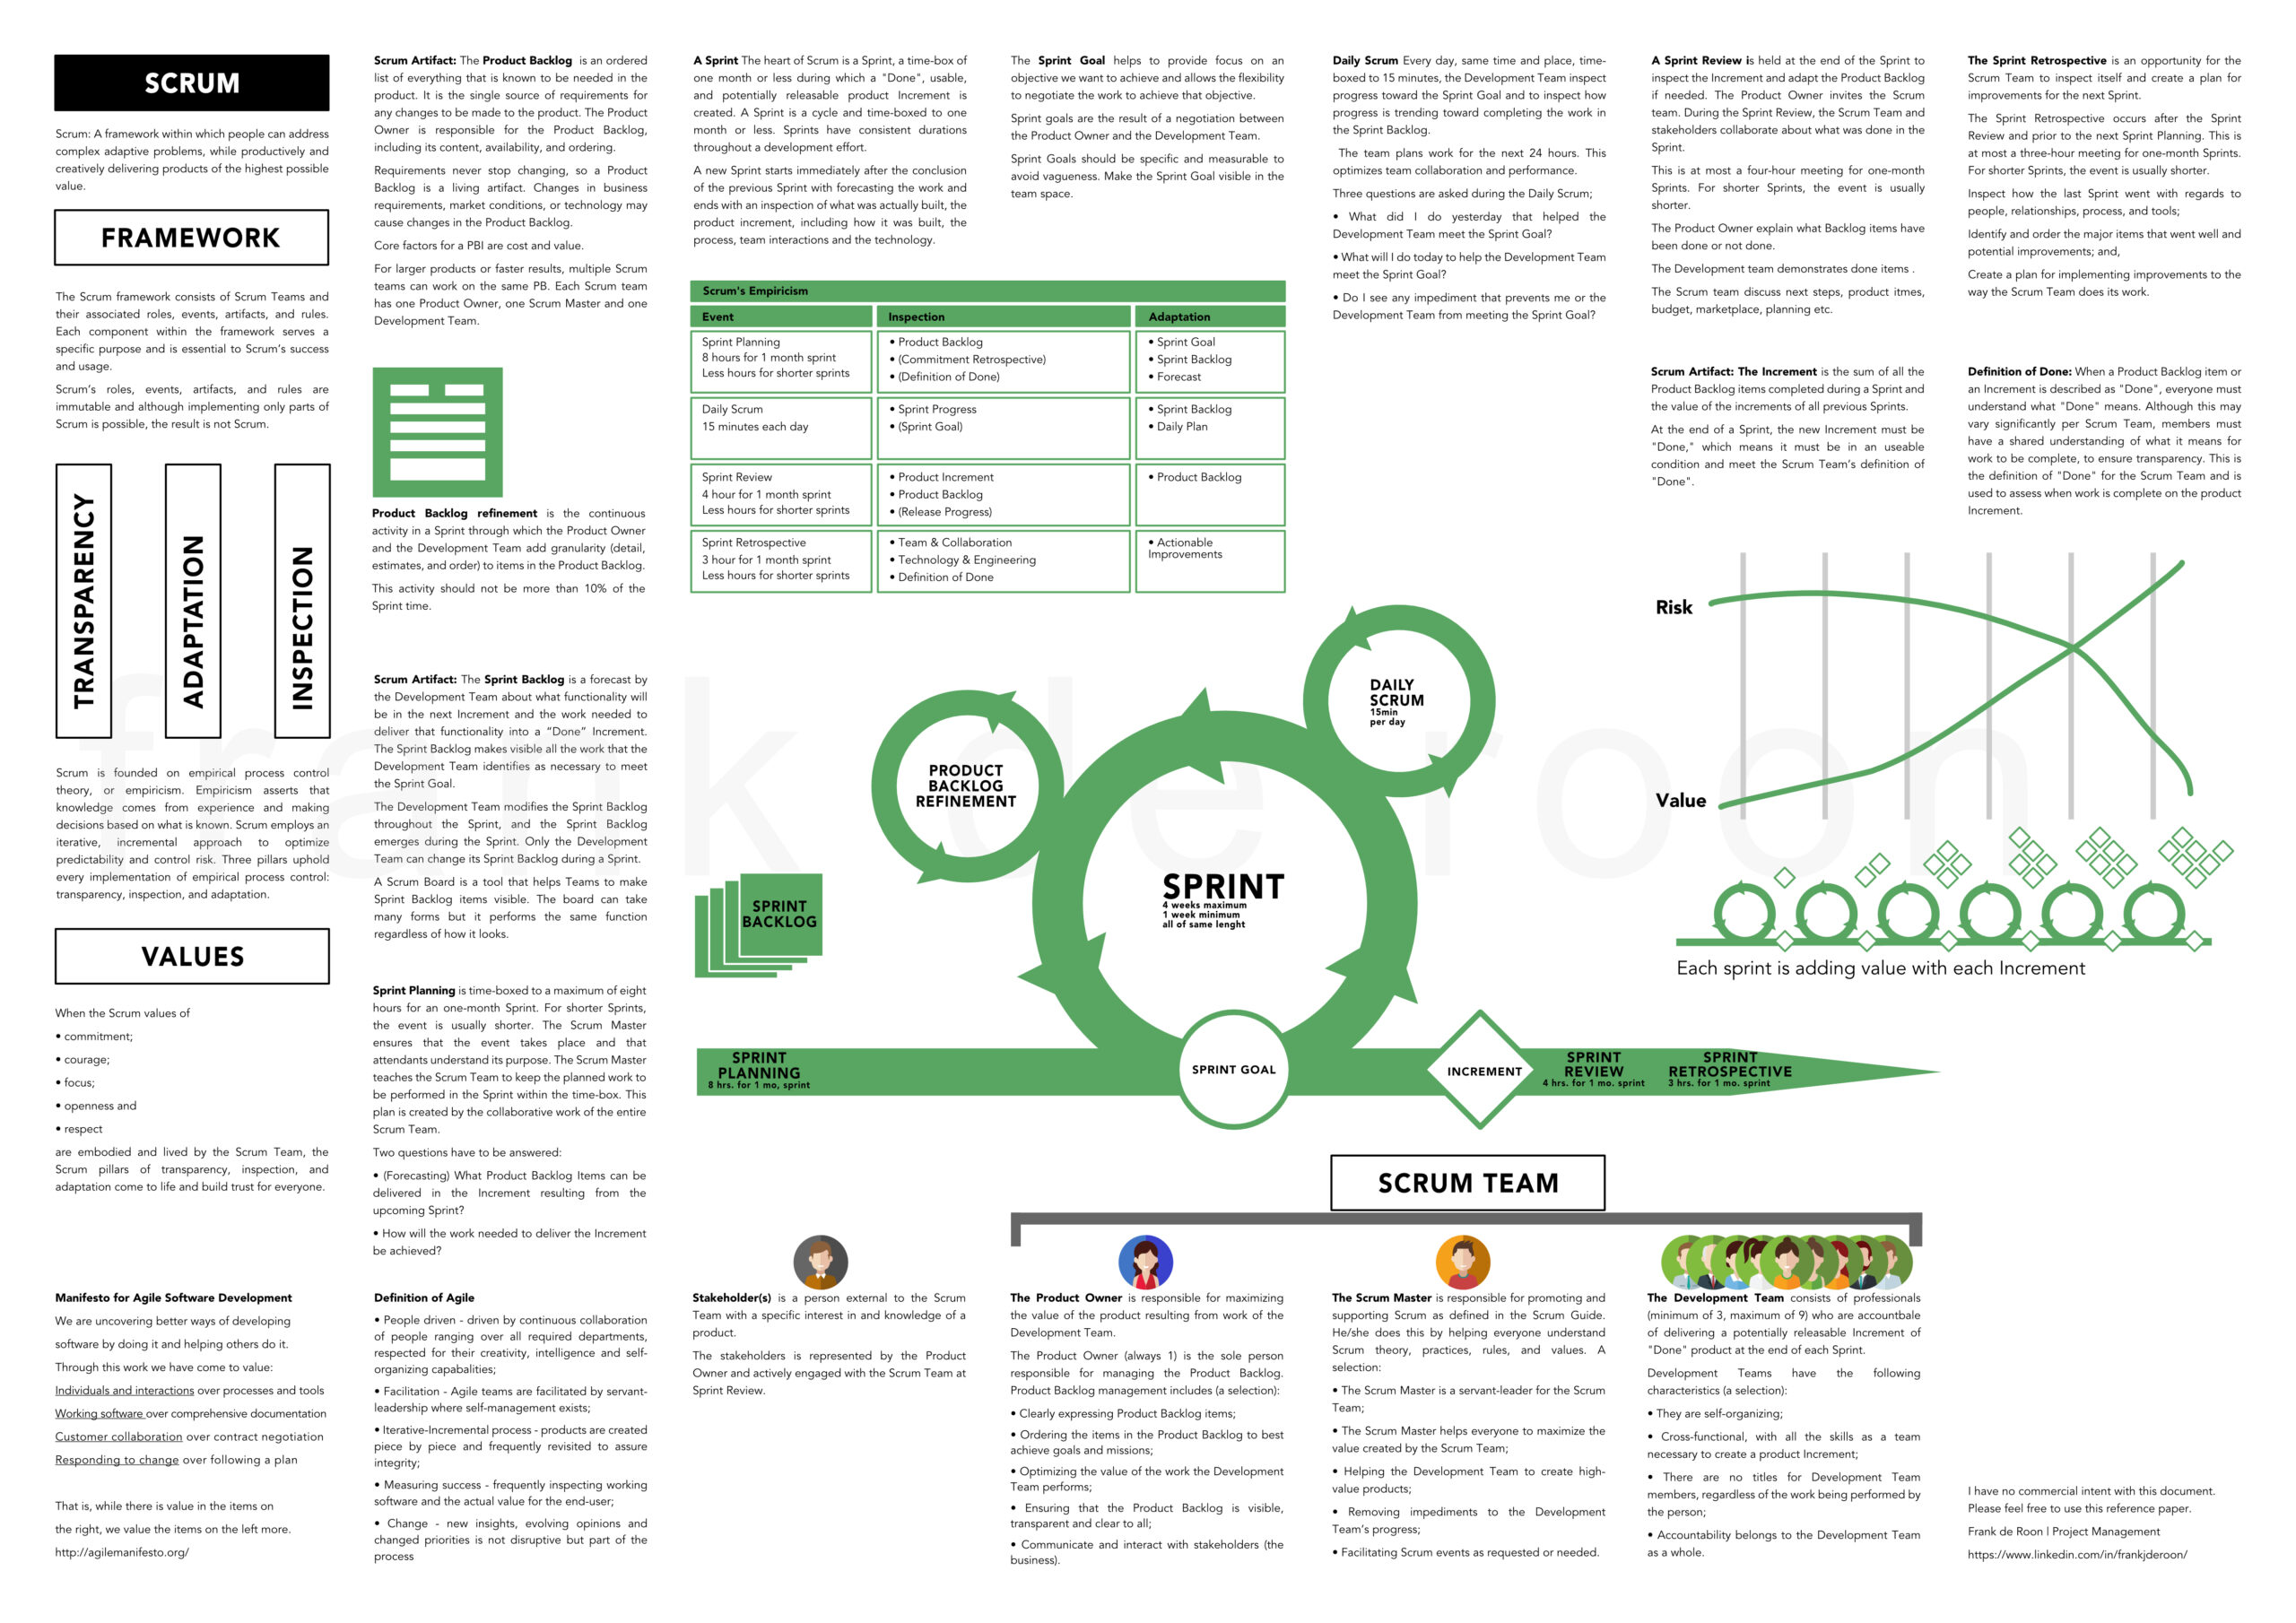 sharing a scrum reference sheet for training and study